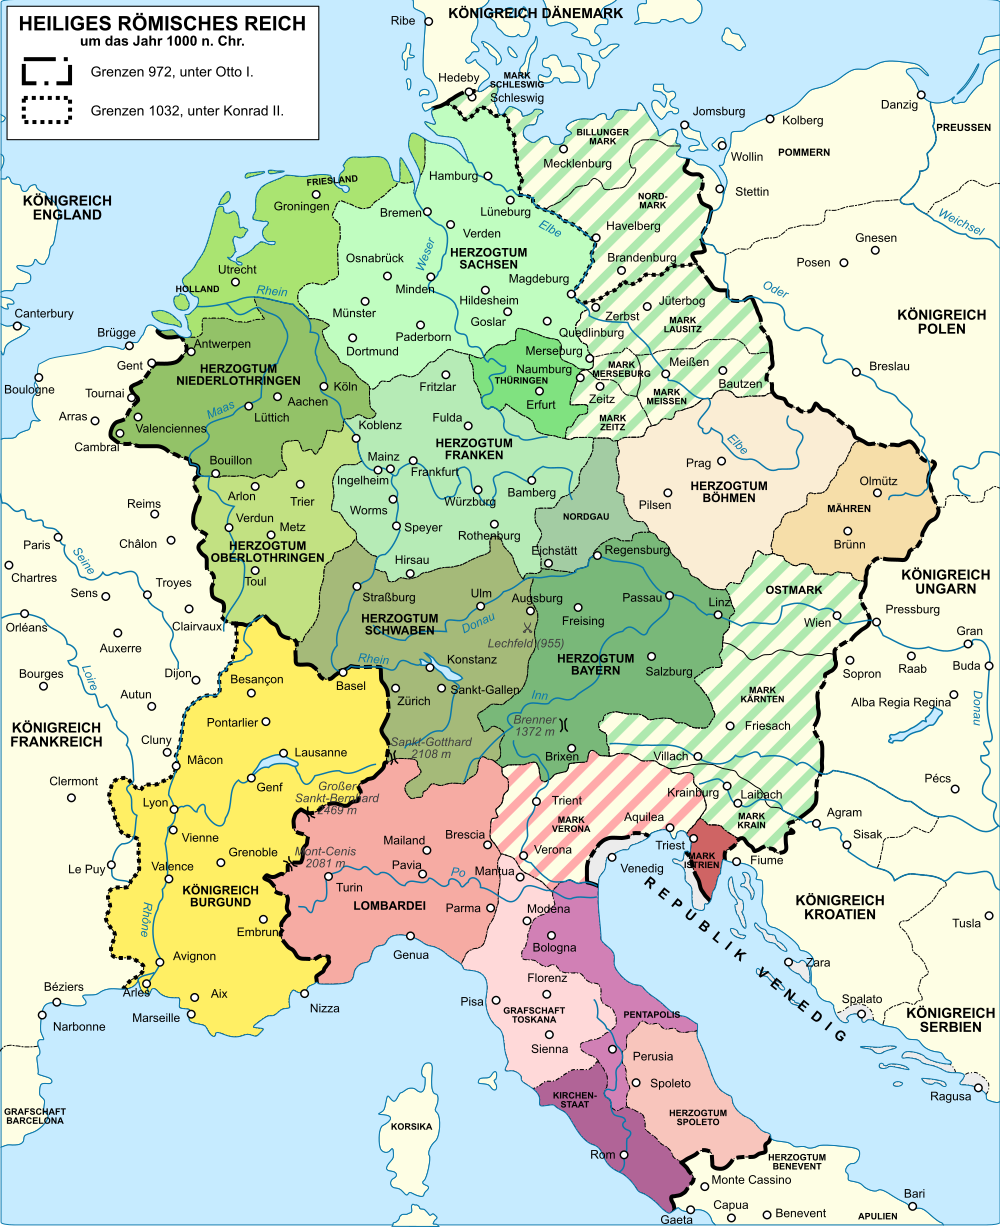 http://upload.wikimedia.org/wikipedia/commons/c/c4/Holy_Roman_Empire_1000_map-de.png